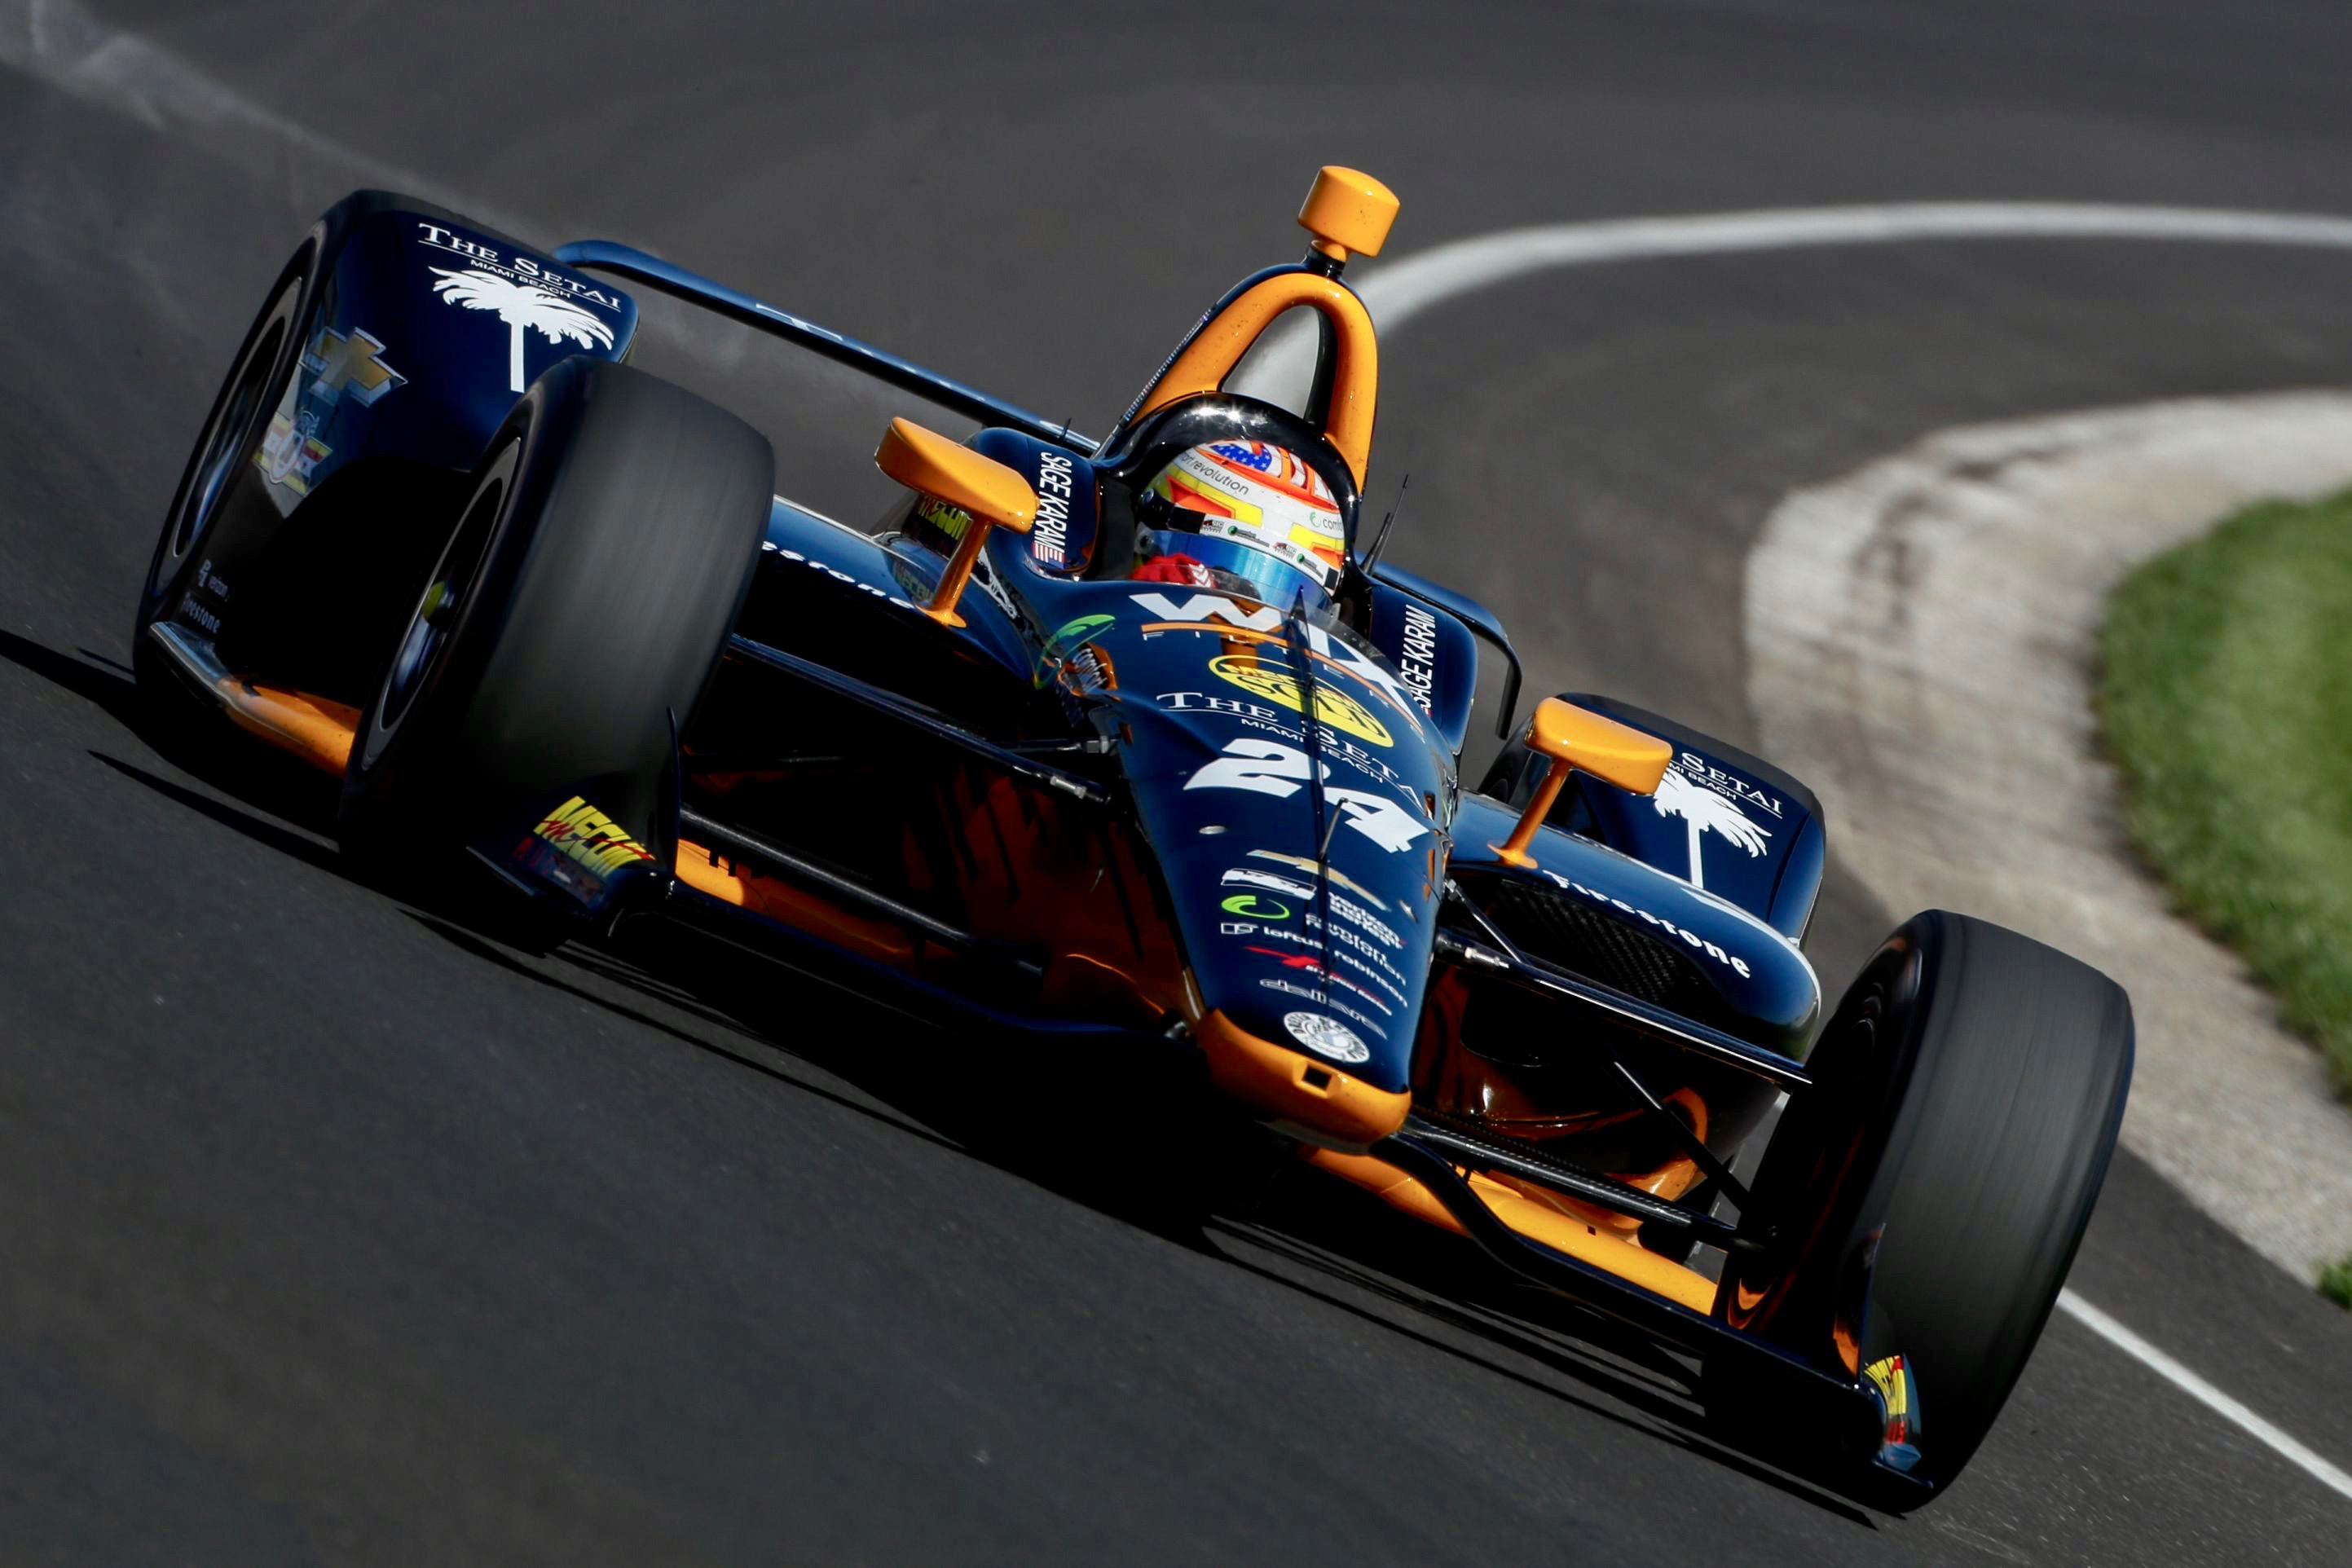 Indianapolis 500, Mecum extends its Indy 500 racing relationship, ClassicCars.com Journal